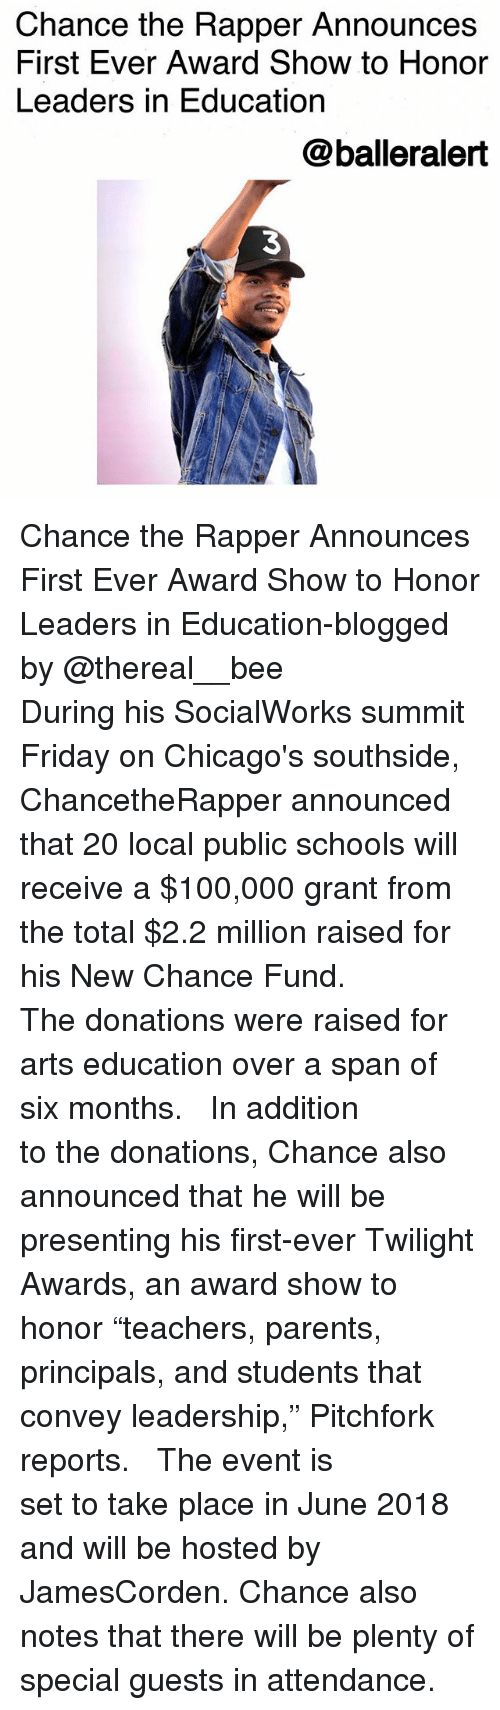 """Totaled: Chance the Rapper Announces  First Ever Award Show to Honor  Leaders in Education  @balleralert  3 Chance the Rapper Announces First Ever Award Show to Honor Leaders in Education-blogged by @thereal__bee ⠀⠀⠀⠀⠀⠀⠀⠀⠀ ⠀⠀ During his SocialWorks summit Friday on Chicago's southside, ChancetheRapper announced that 20 local public schools will receive a $100,000 grant from the total $2.2 million raised for his New Chance Fund. ⠀⠀⠀⠀⠀⠀⠀⠀⠀ ⠀⠀ The donations were raised for arts education over a span of six months. ⠀⠀⠀⠀⠀⠀⠀⠀⠀ ⠀⠀ In addition to the donations, Chance also announced that he will be presenting his first-ever Twilight Awards, an award show to honor """"teachers, parents, principals, and students that convey leadership,"""" Pitchfork reports. ⠀⠀⠀⠀⠀⠀⠀⠀⠀ ⠀⠀ The event is set to take place in June 2018 and will be hosted by JamesCorden. Chance also notes that there will be plenty of special guests in attendance."""